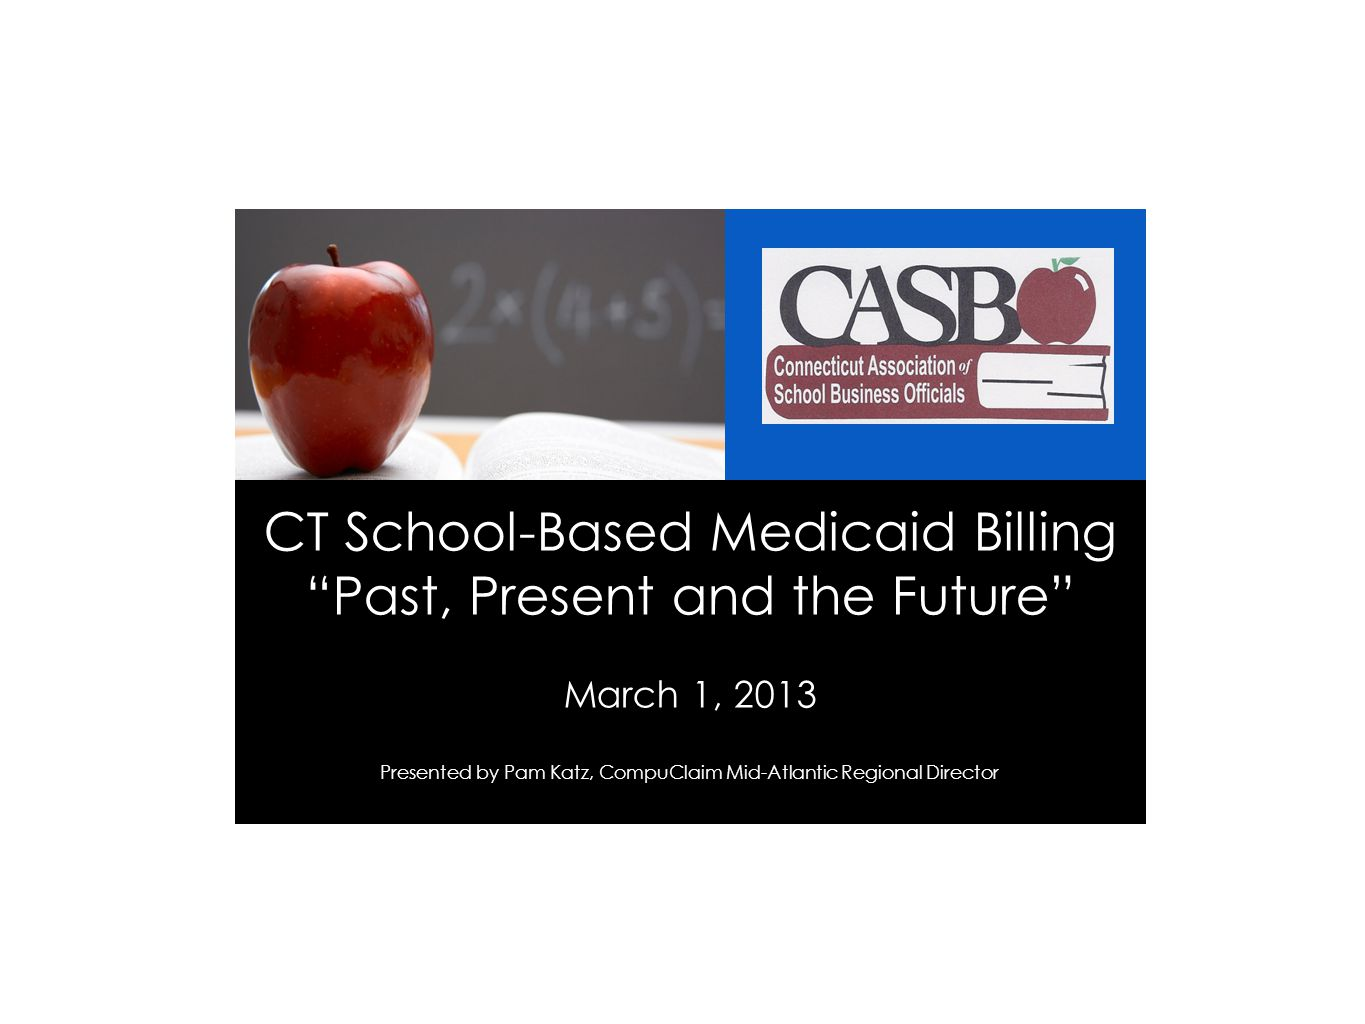 Presentation Overview Opening remarks History of Medicaid School Based Child Health Program CT SBCH Program Maximizing Reimbursement Opportunities Medicaid Compliance Cost Reports Reconciliation and Settlement Recent Changes to SBCH program Five Keys to Success